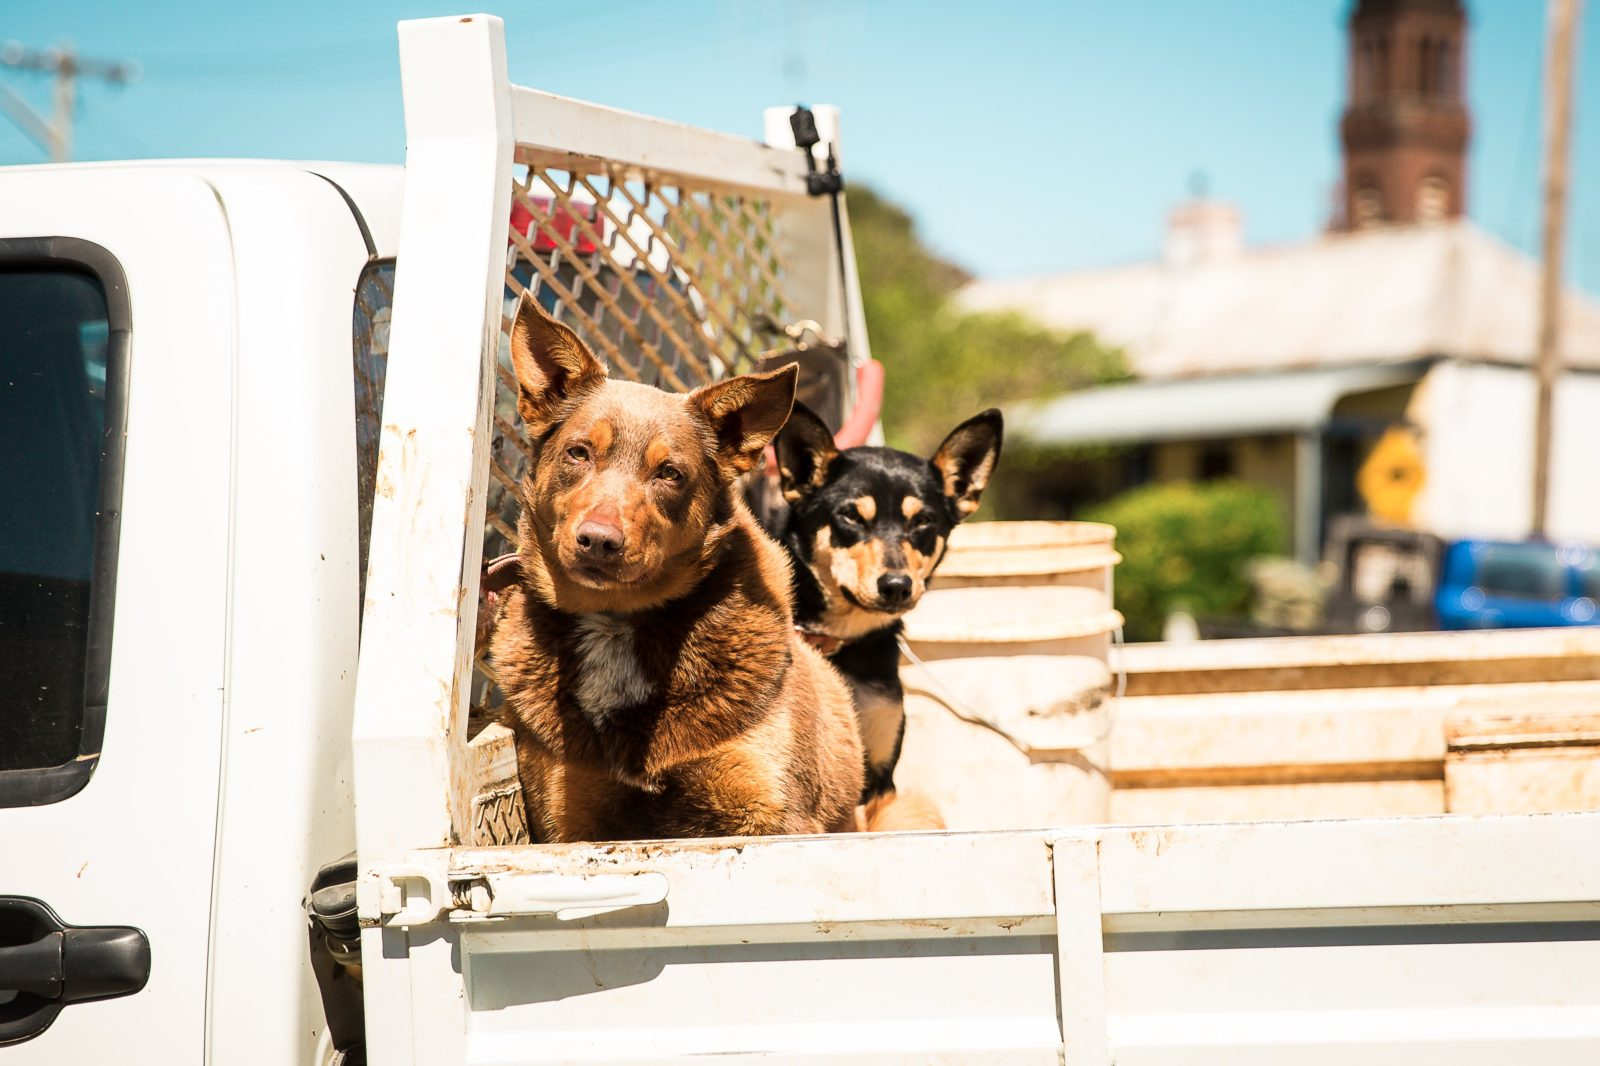 Working dogs are part of the fabric of the Hilltops Region